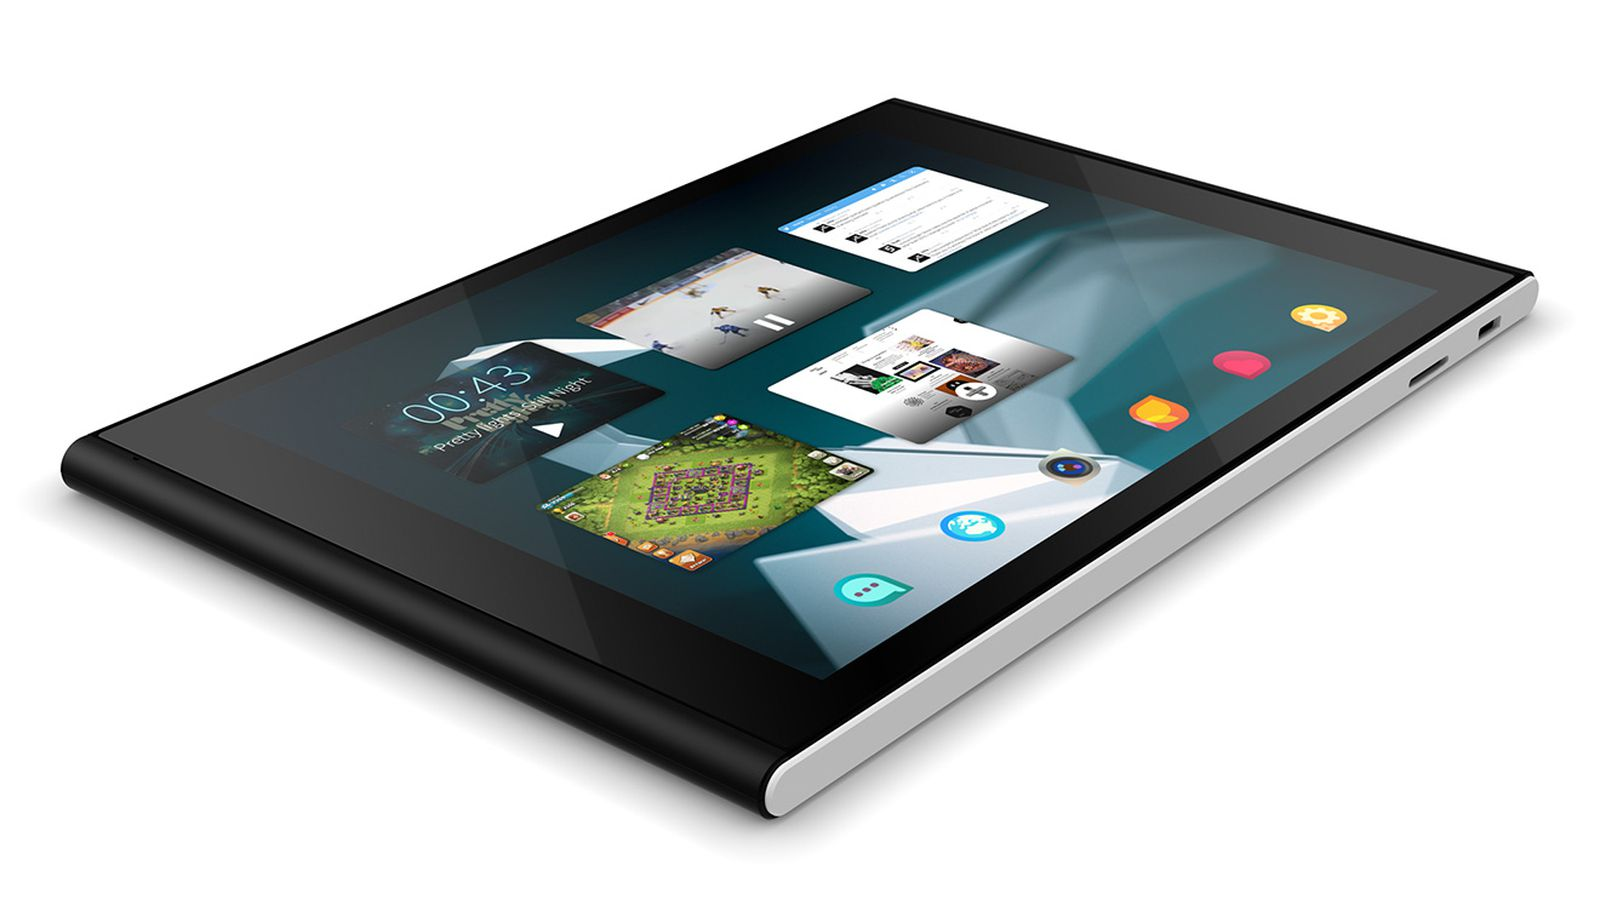 The Jolla Tablet wants your help to revolutionize ...